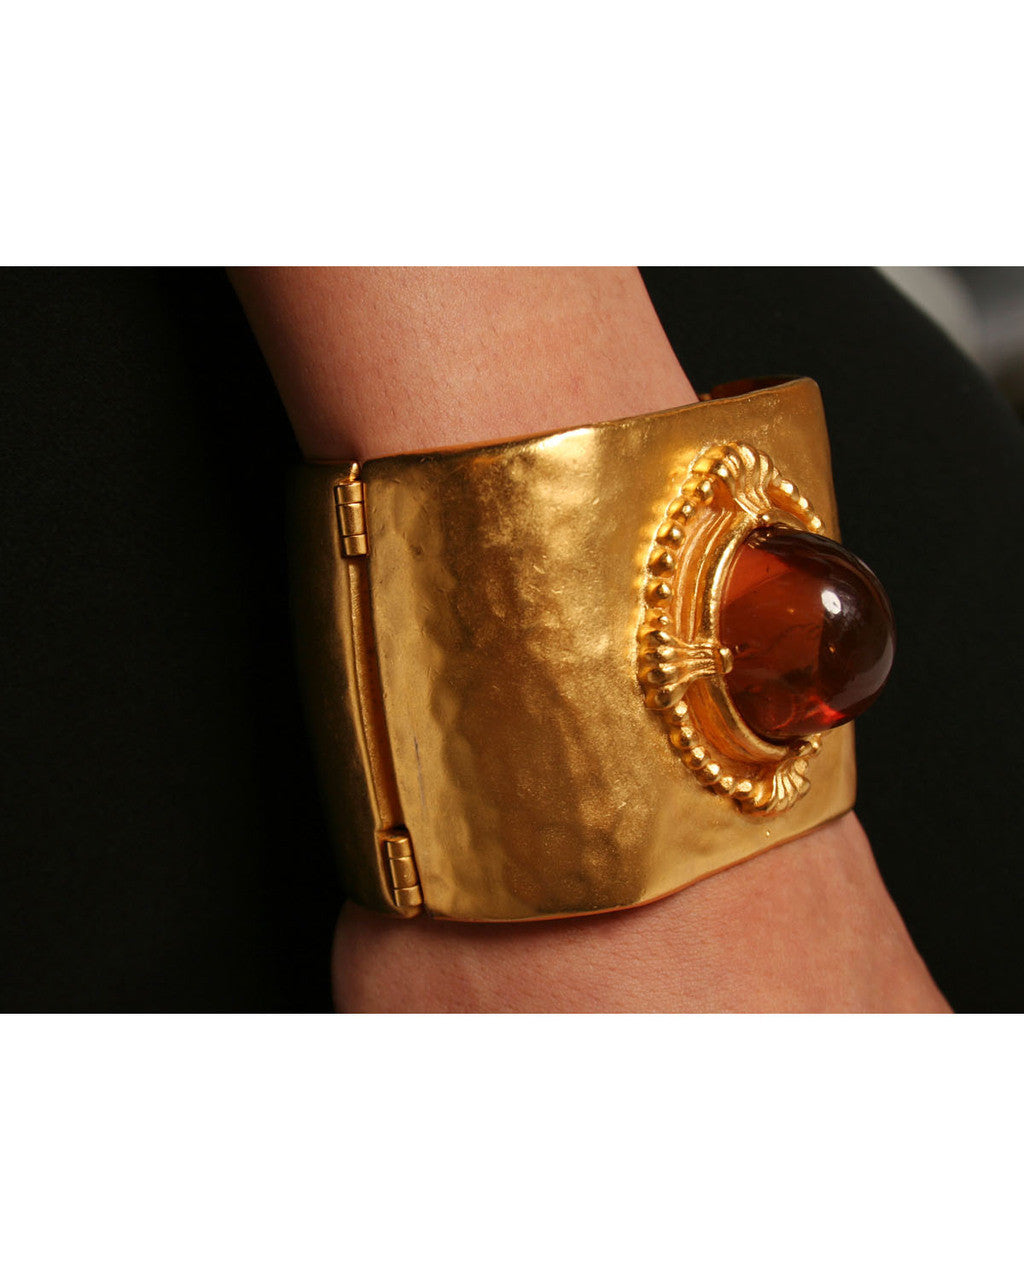 Karl Lagerfeld 1990s Gold Tone Clamp Cuff